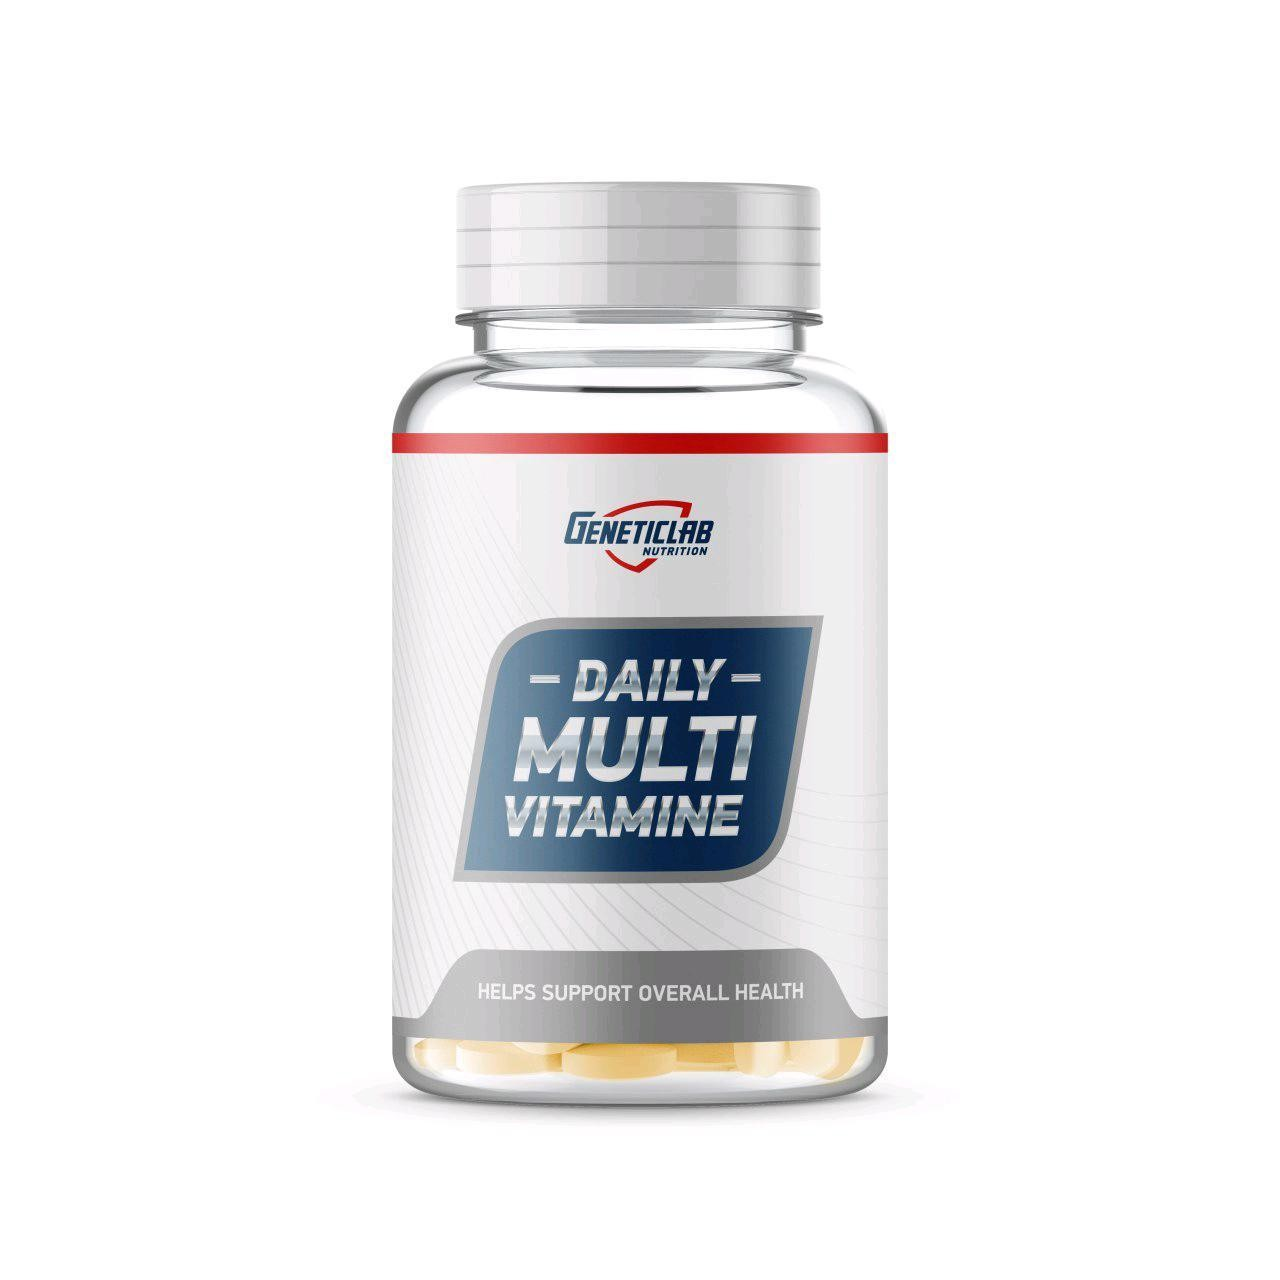 Daily Multivitamin Geneticlab